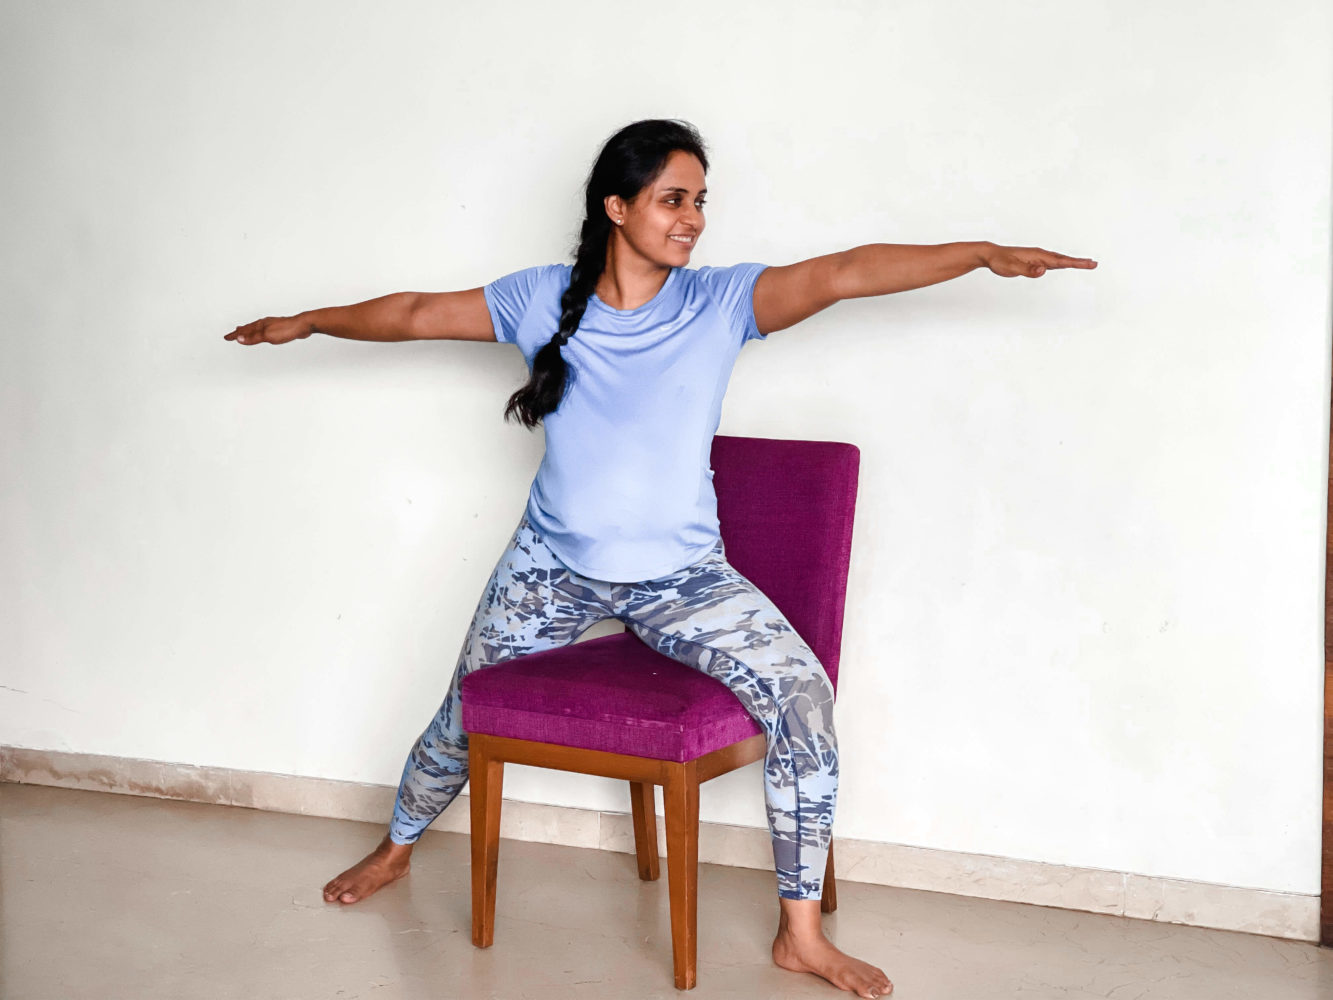 Supported Virbhadrasana II during Pregnancy